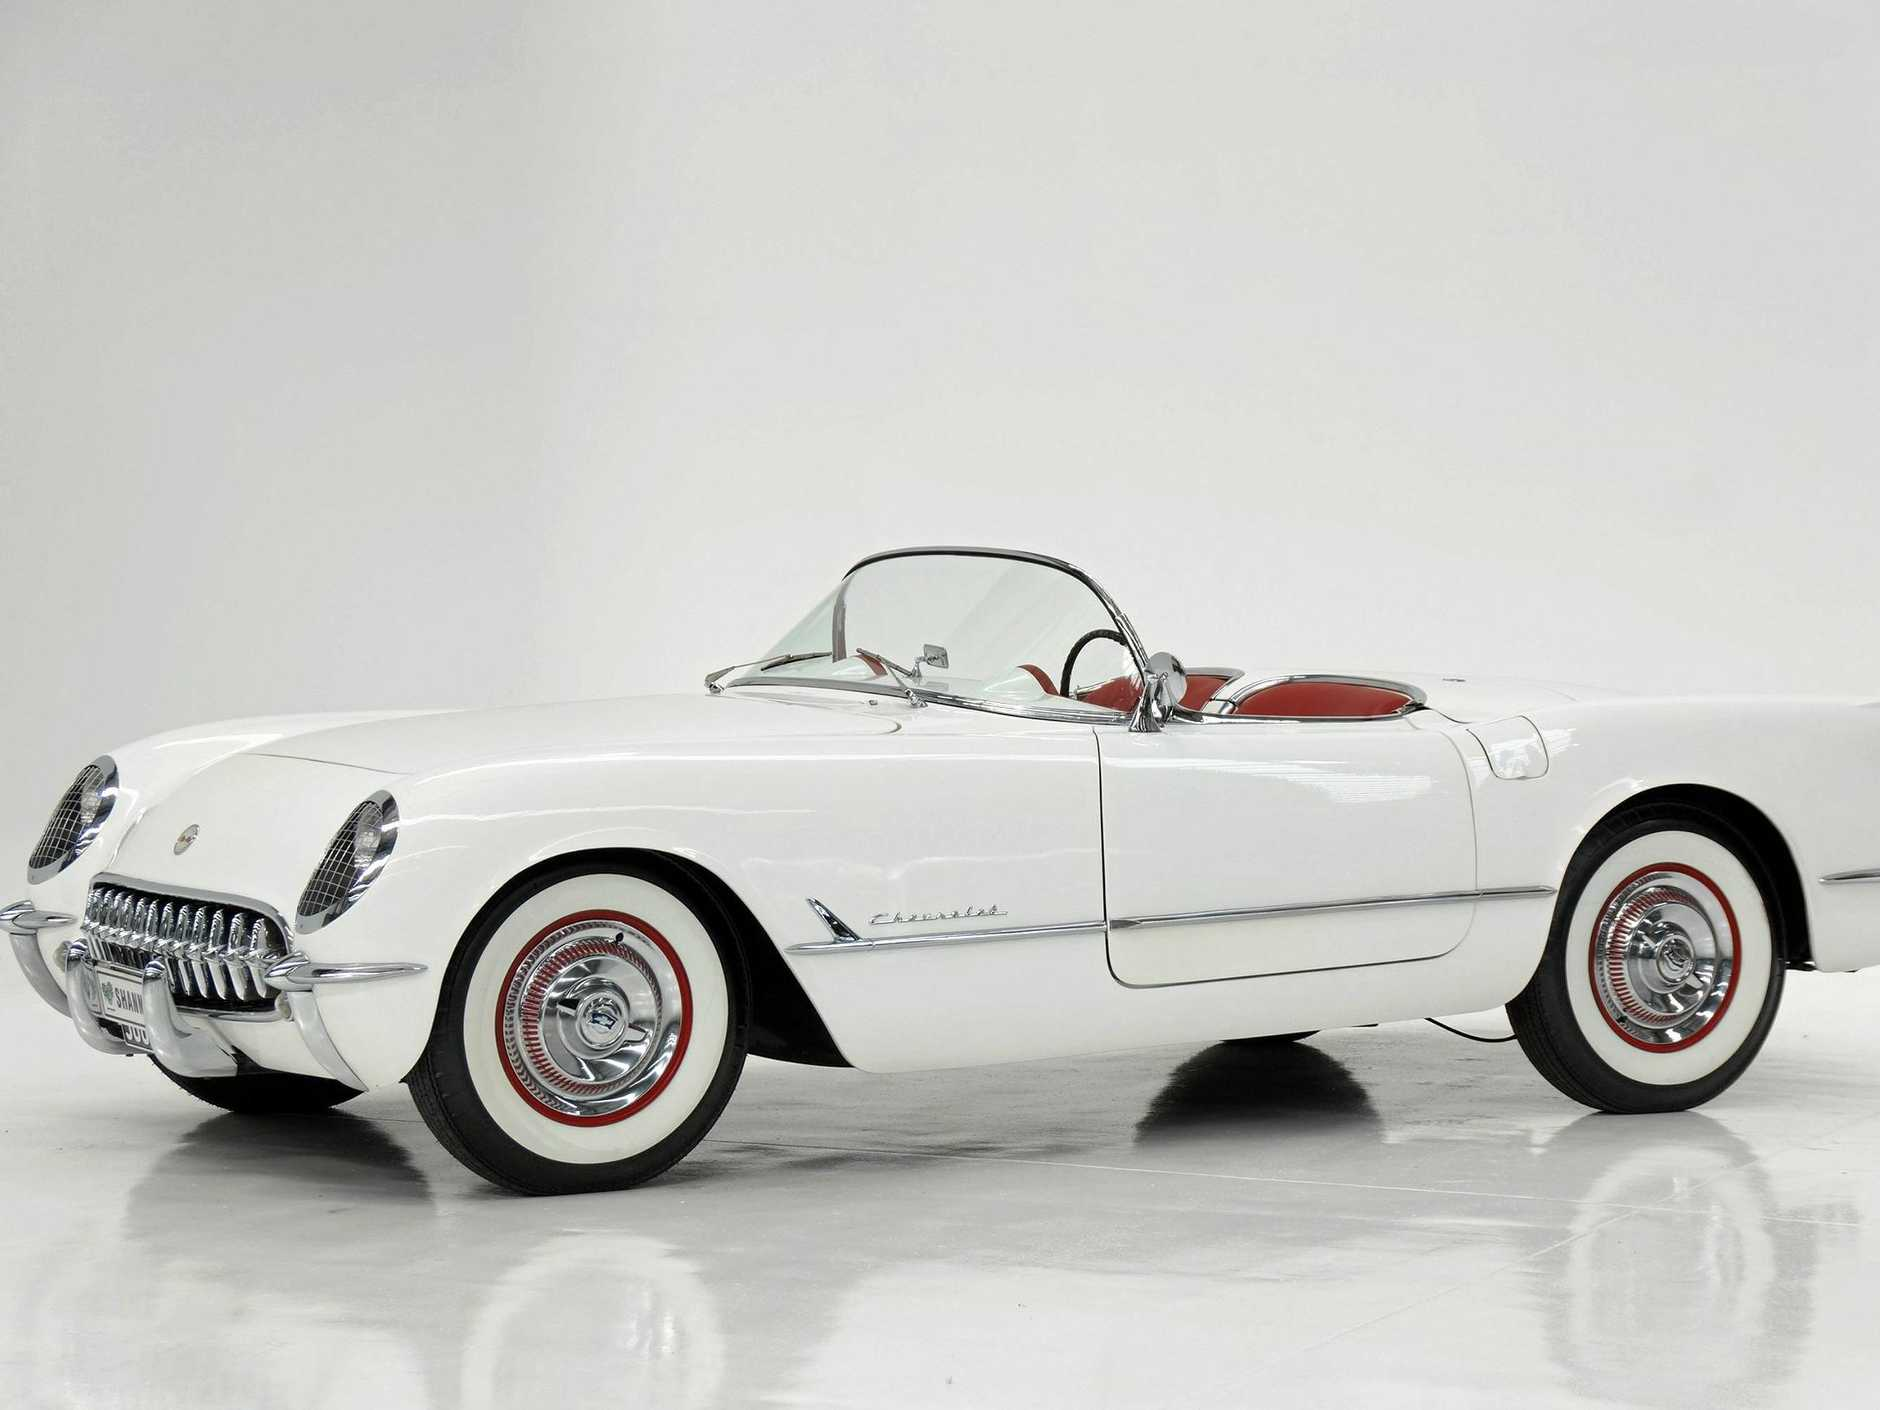 This second-year C1 1954 Corvette sold for $116,000 at Shannons September 25 Melbourne Spring Auction on September 25, as did a later 1961 C1 model.